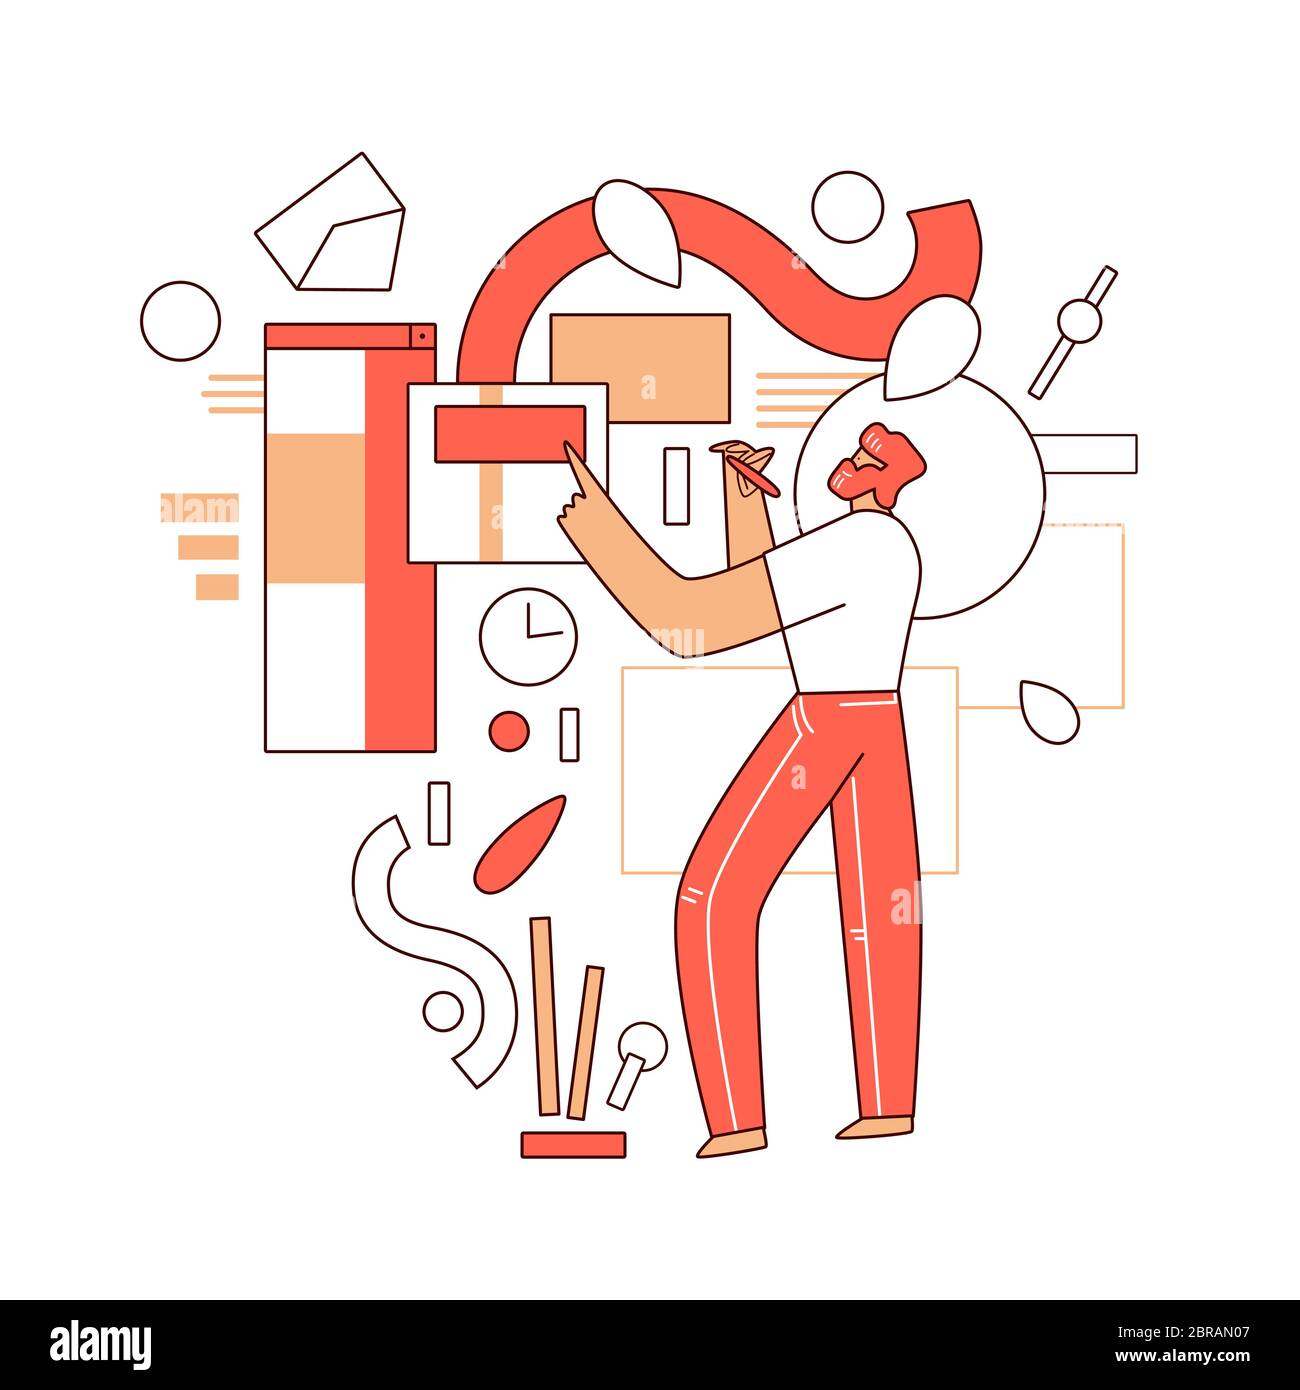 Online education vector flat concept - Man character standing in front of abstract educational elements, web app, video course in computer, science Stock Vector